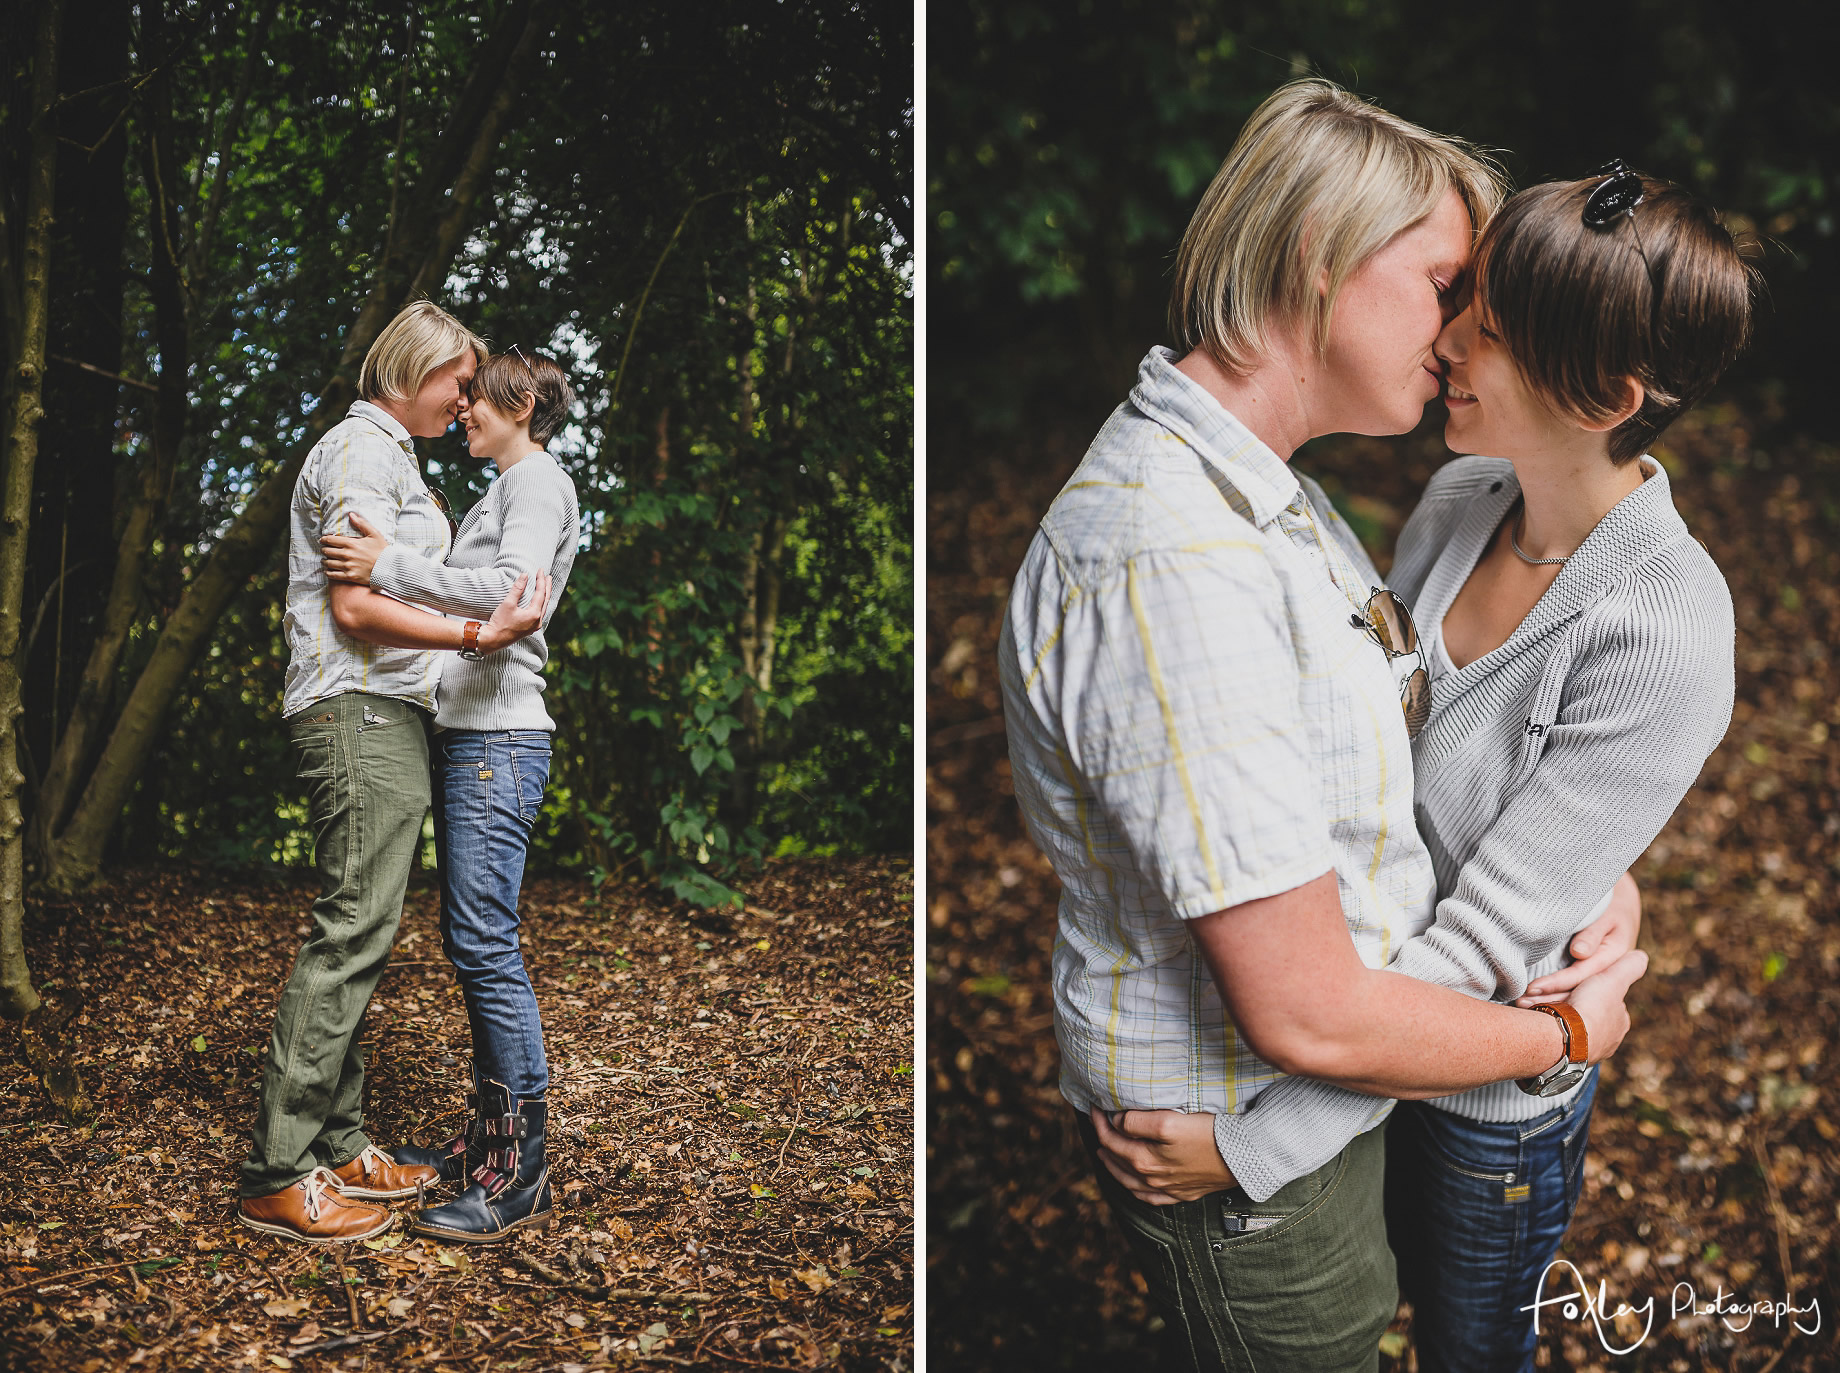 Becky-and-Amy-Pre-Wedding-Portraits-at-Denzell-Gardens-024